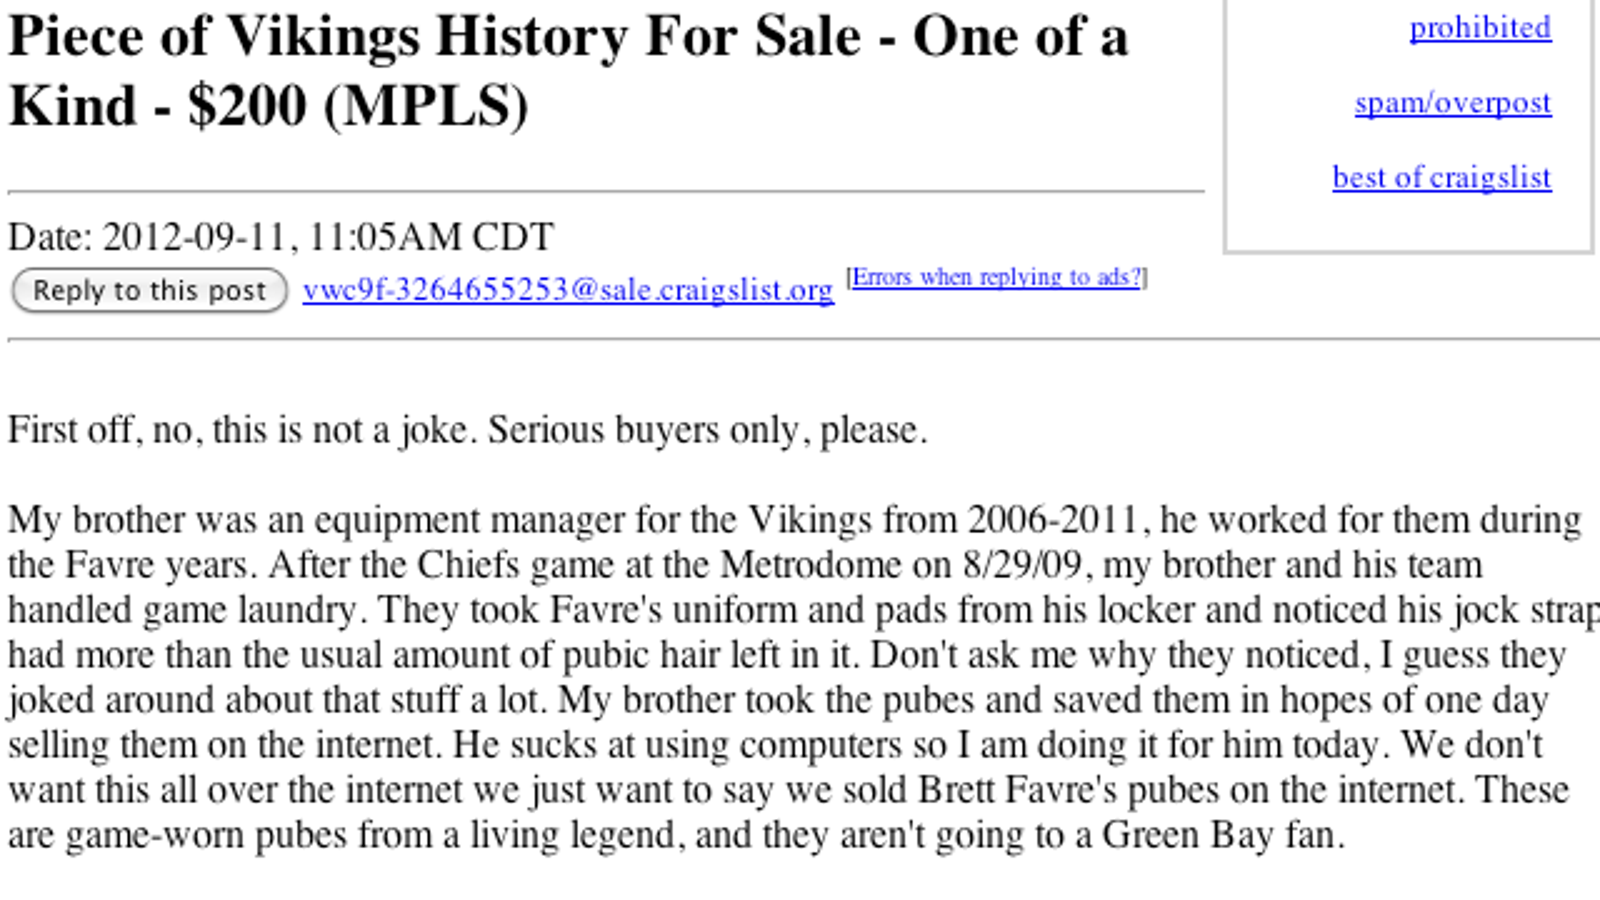 brett favre's purported pubes are for sale on craigslist for $200